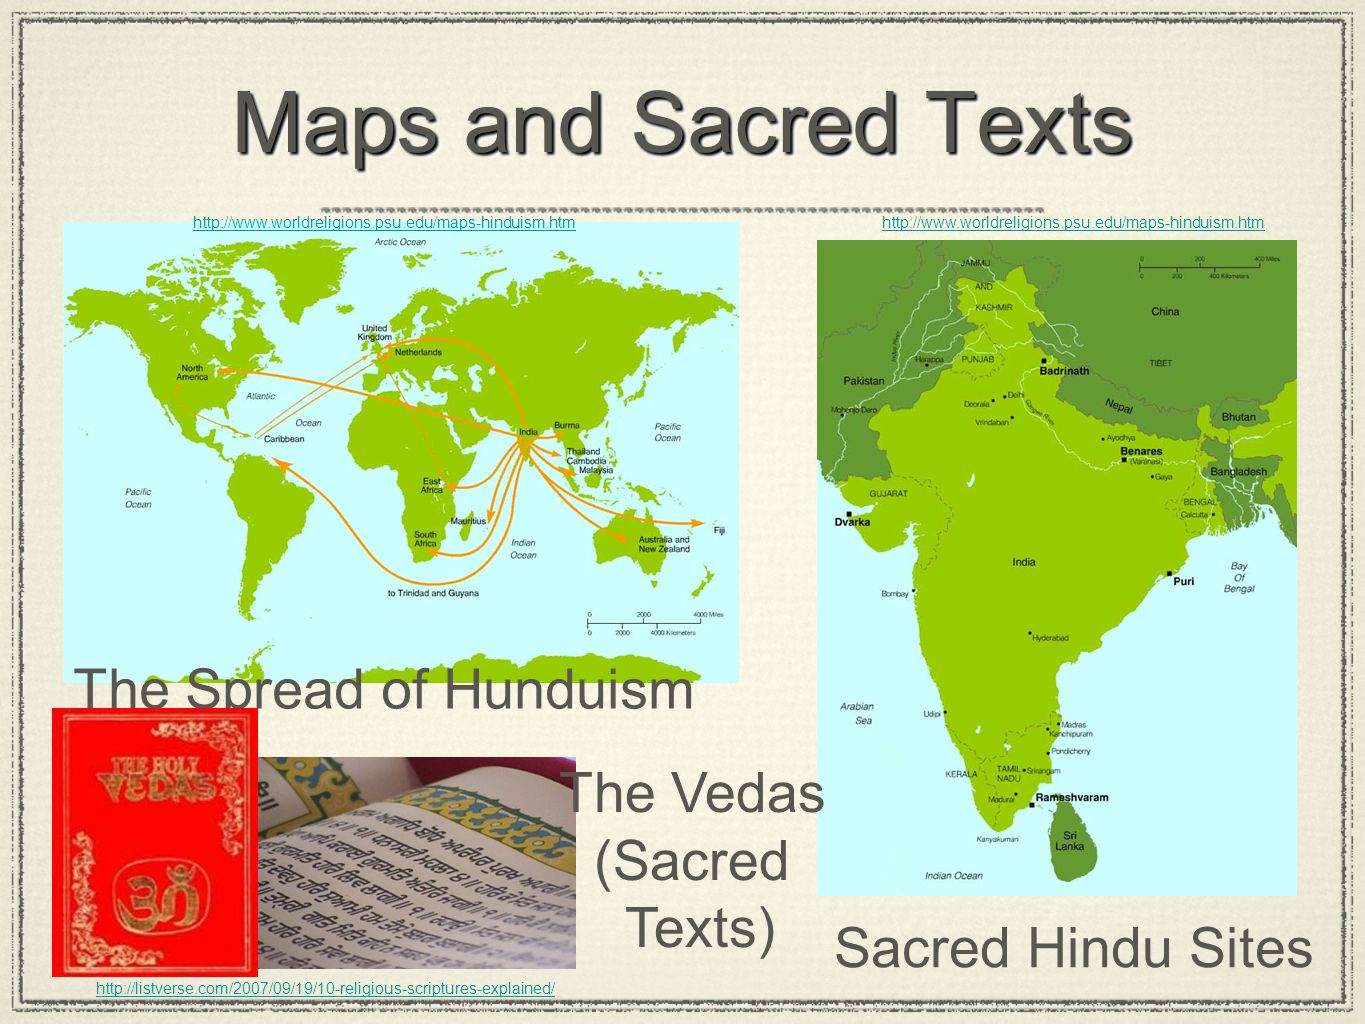 The Spread of Hunduism http://www.worldreligions.psu.edu/maps-hinduism.htm Sacred Hindu Sites http://listverse.com/2007/09/19/10-religious-scriptures-